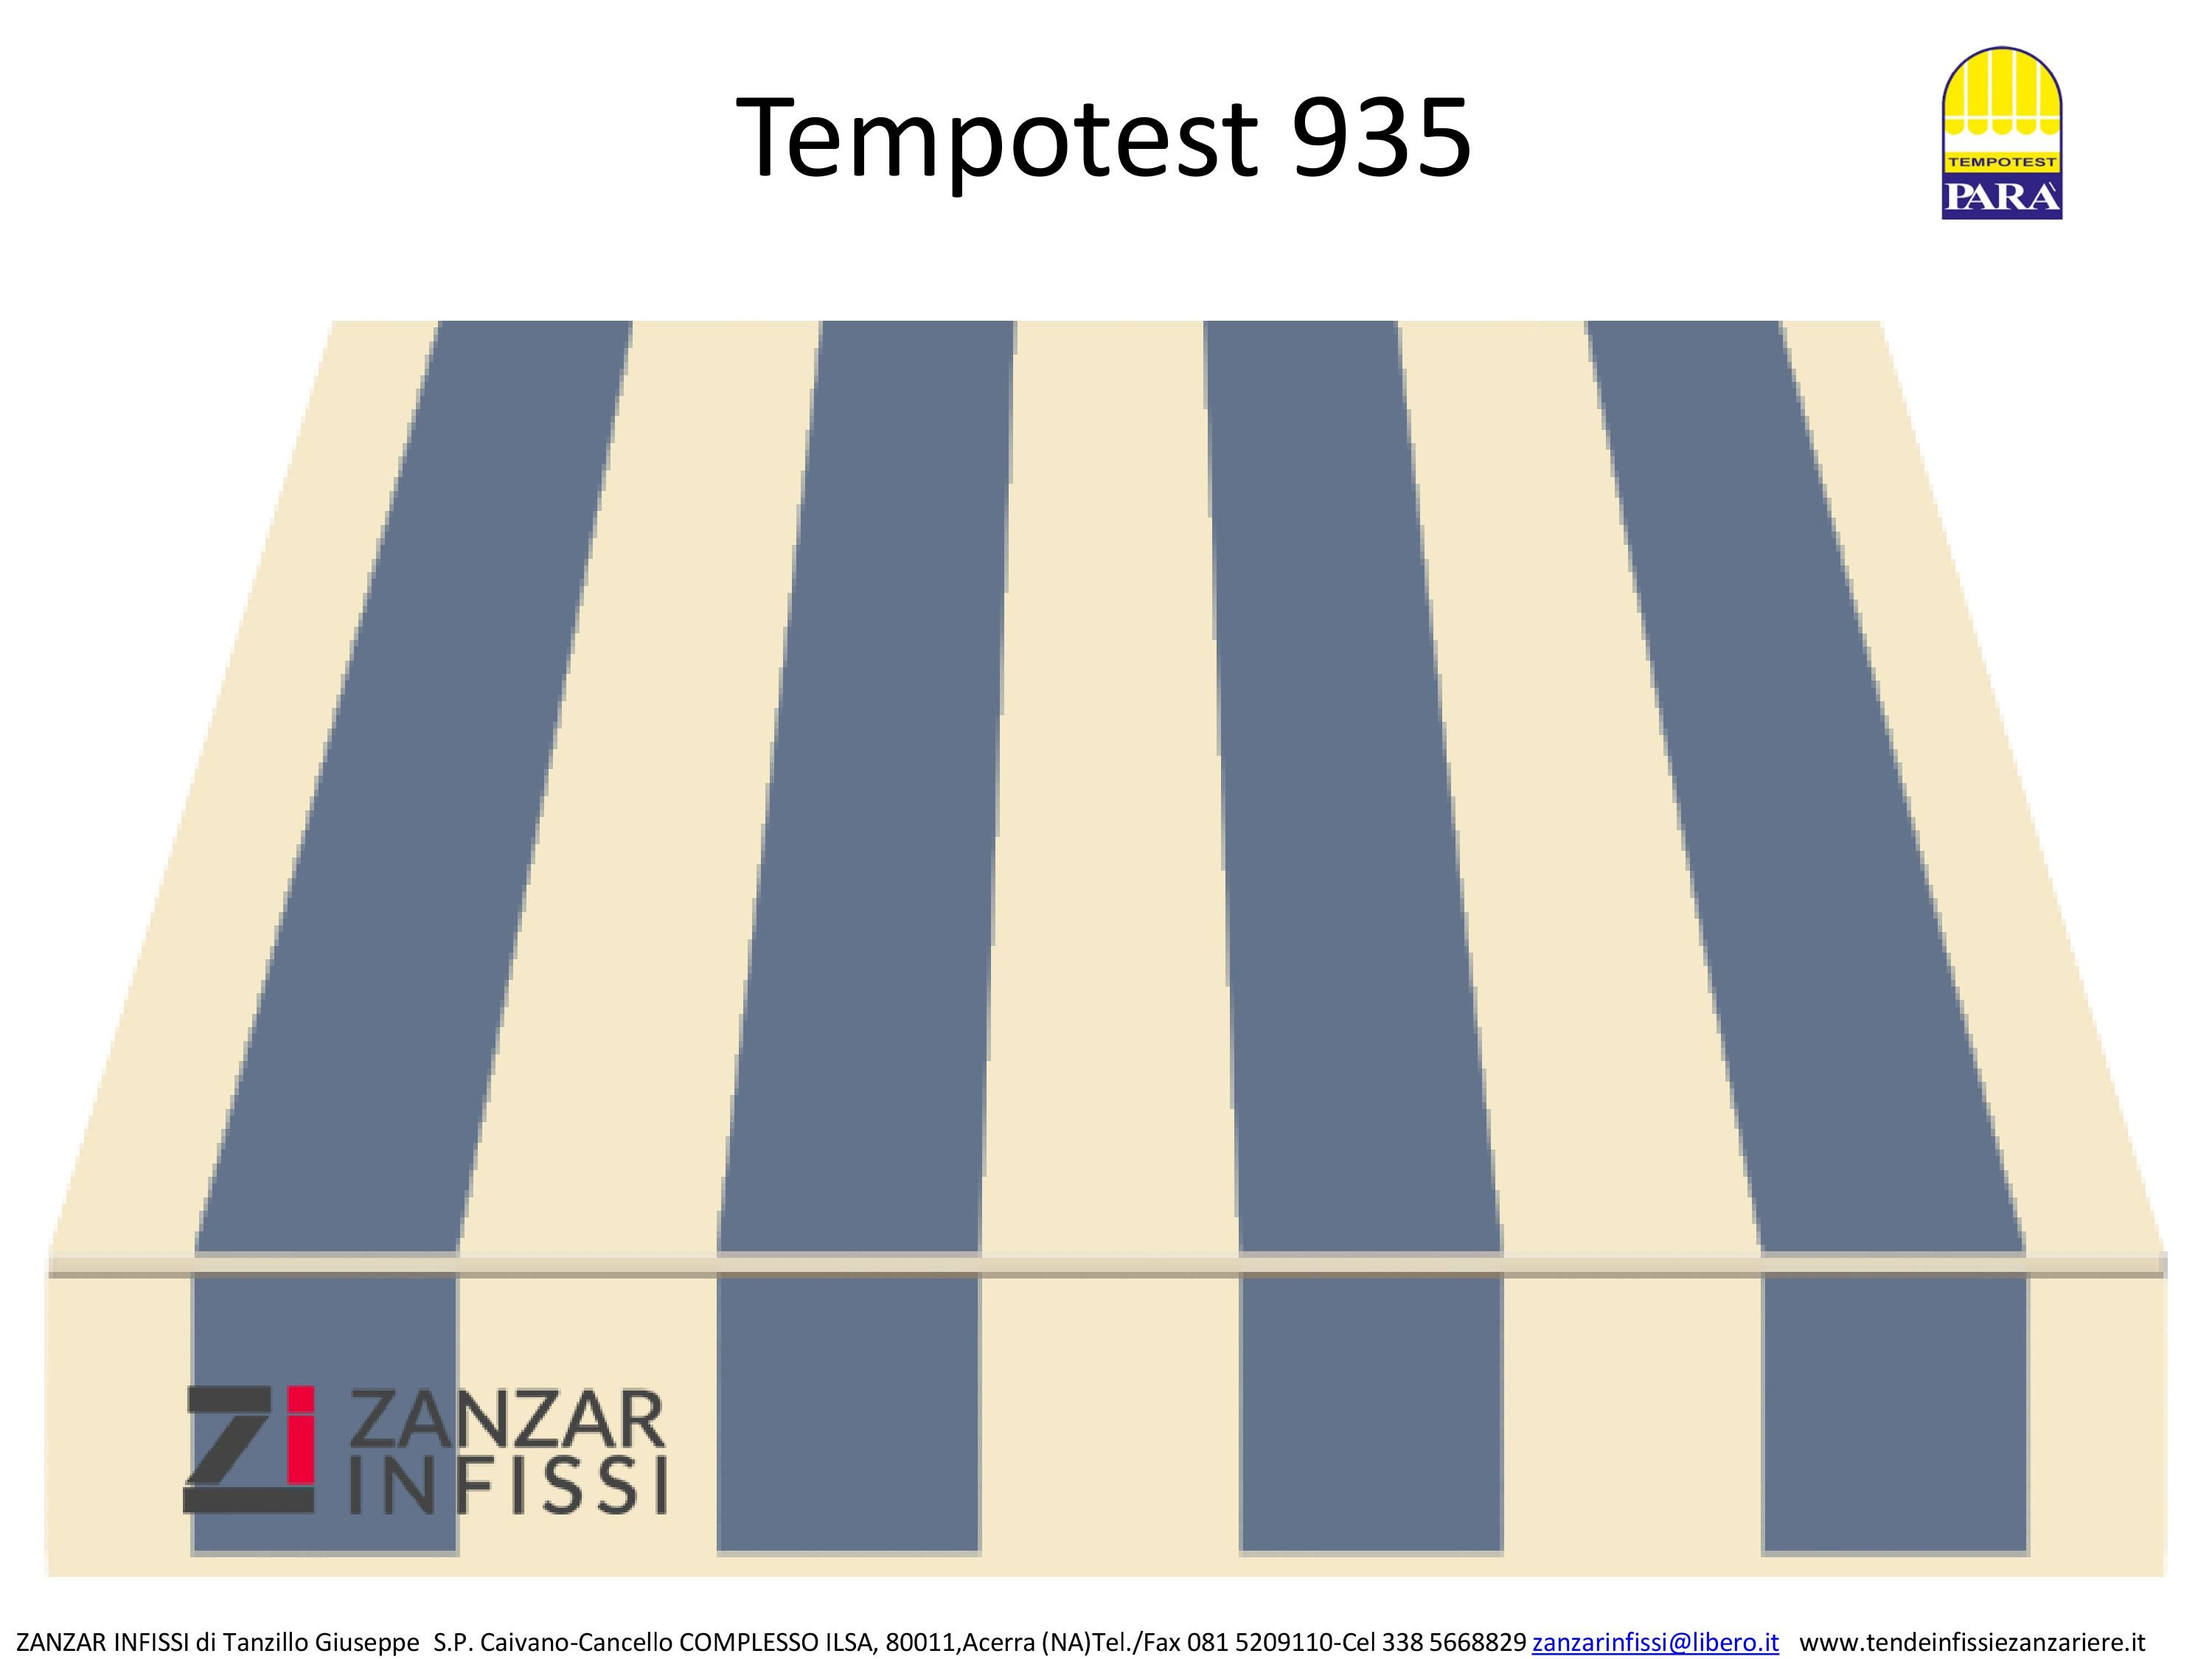 Tempotest 935